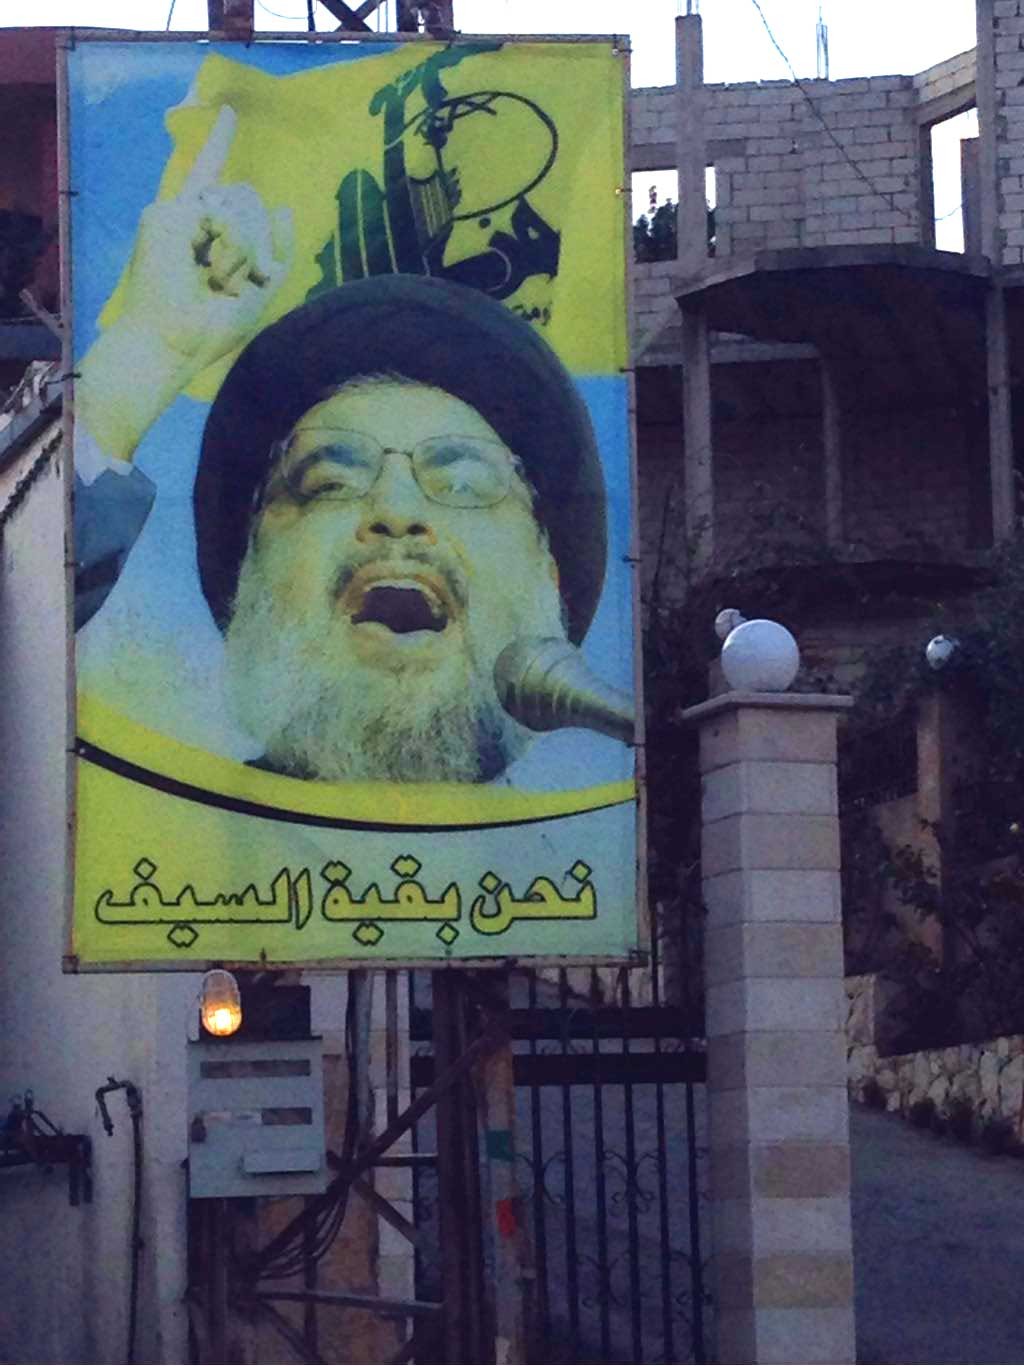 A poster of Hezbollah Secretary General Hassan Nasrallah on a gate in southern Lebanon. (Photo courtesy of the author)